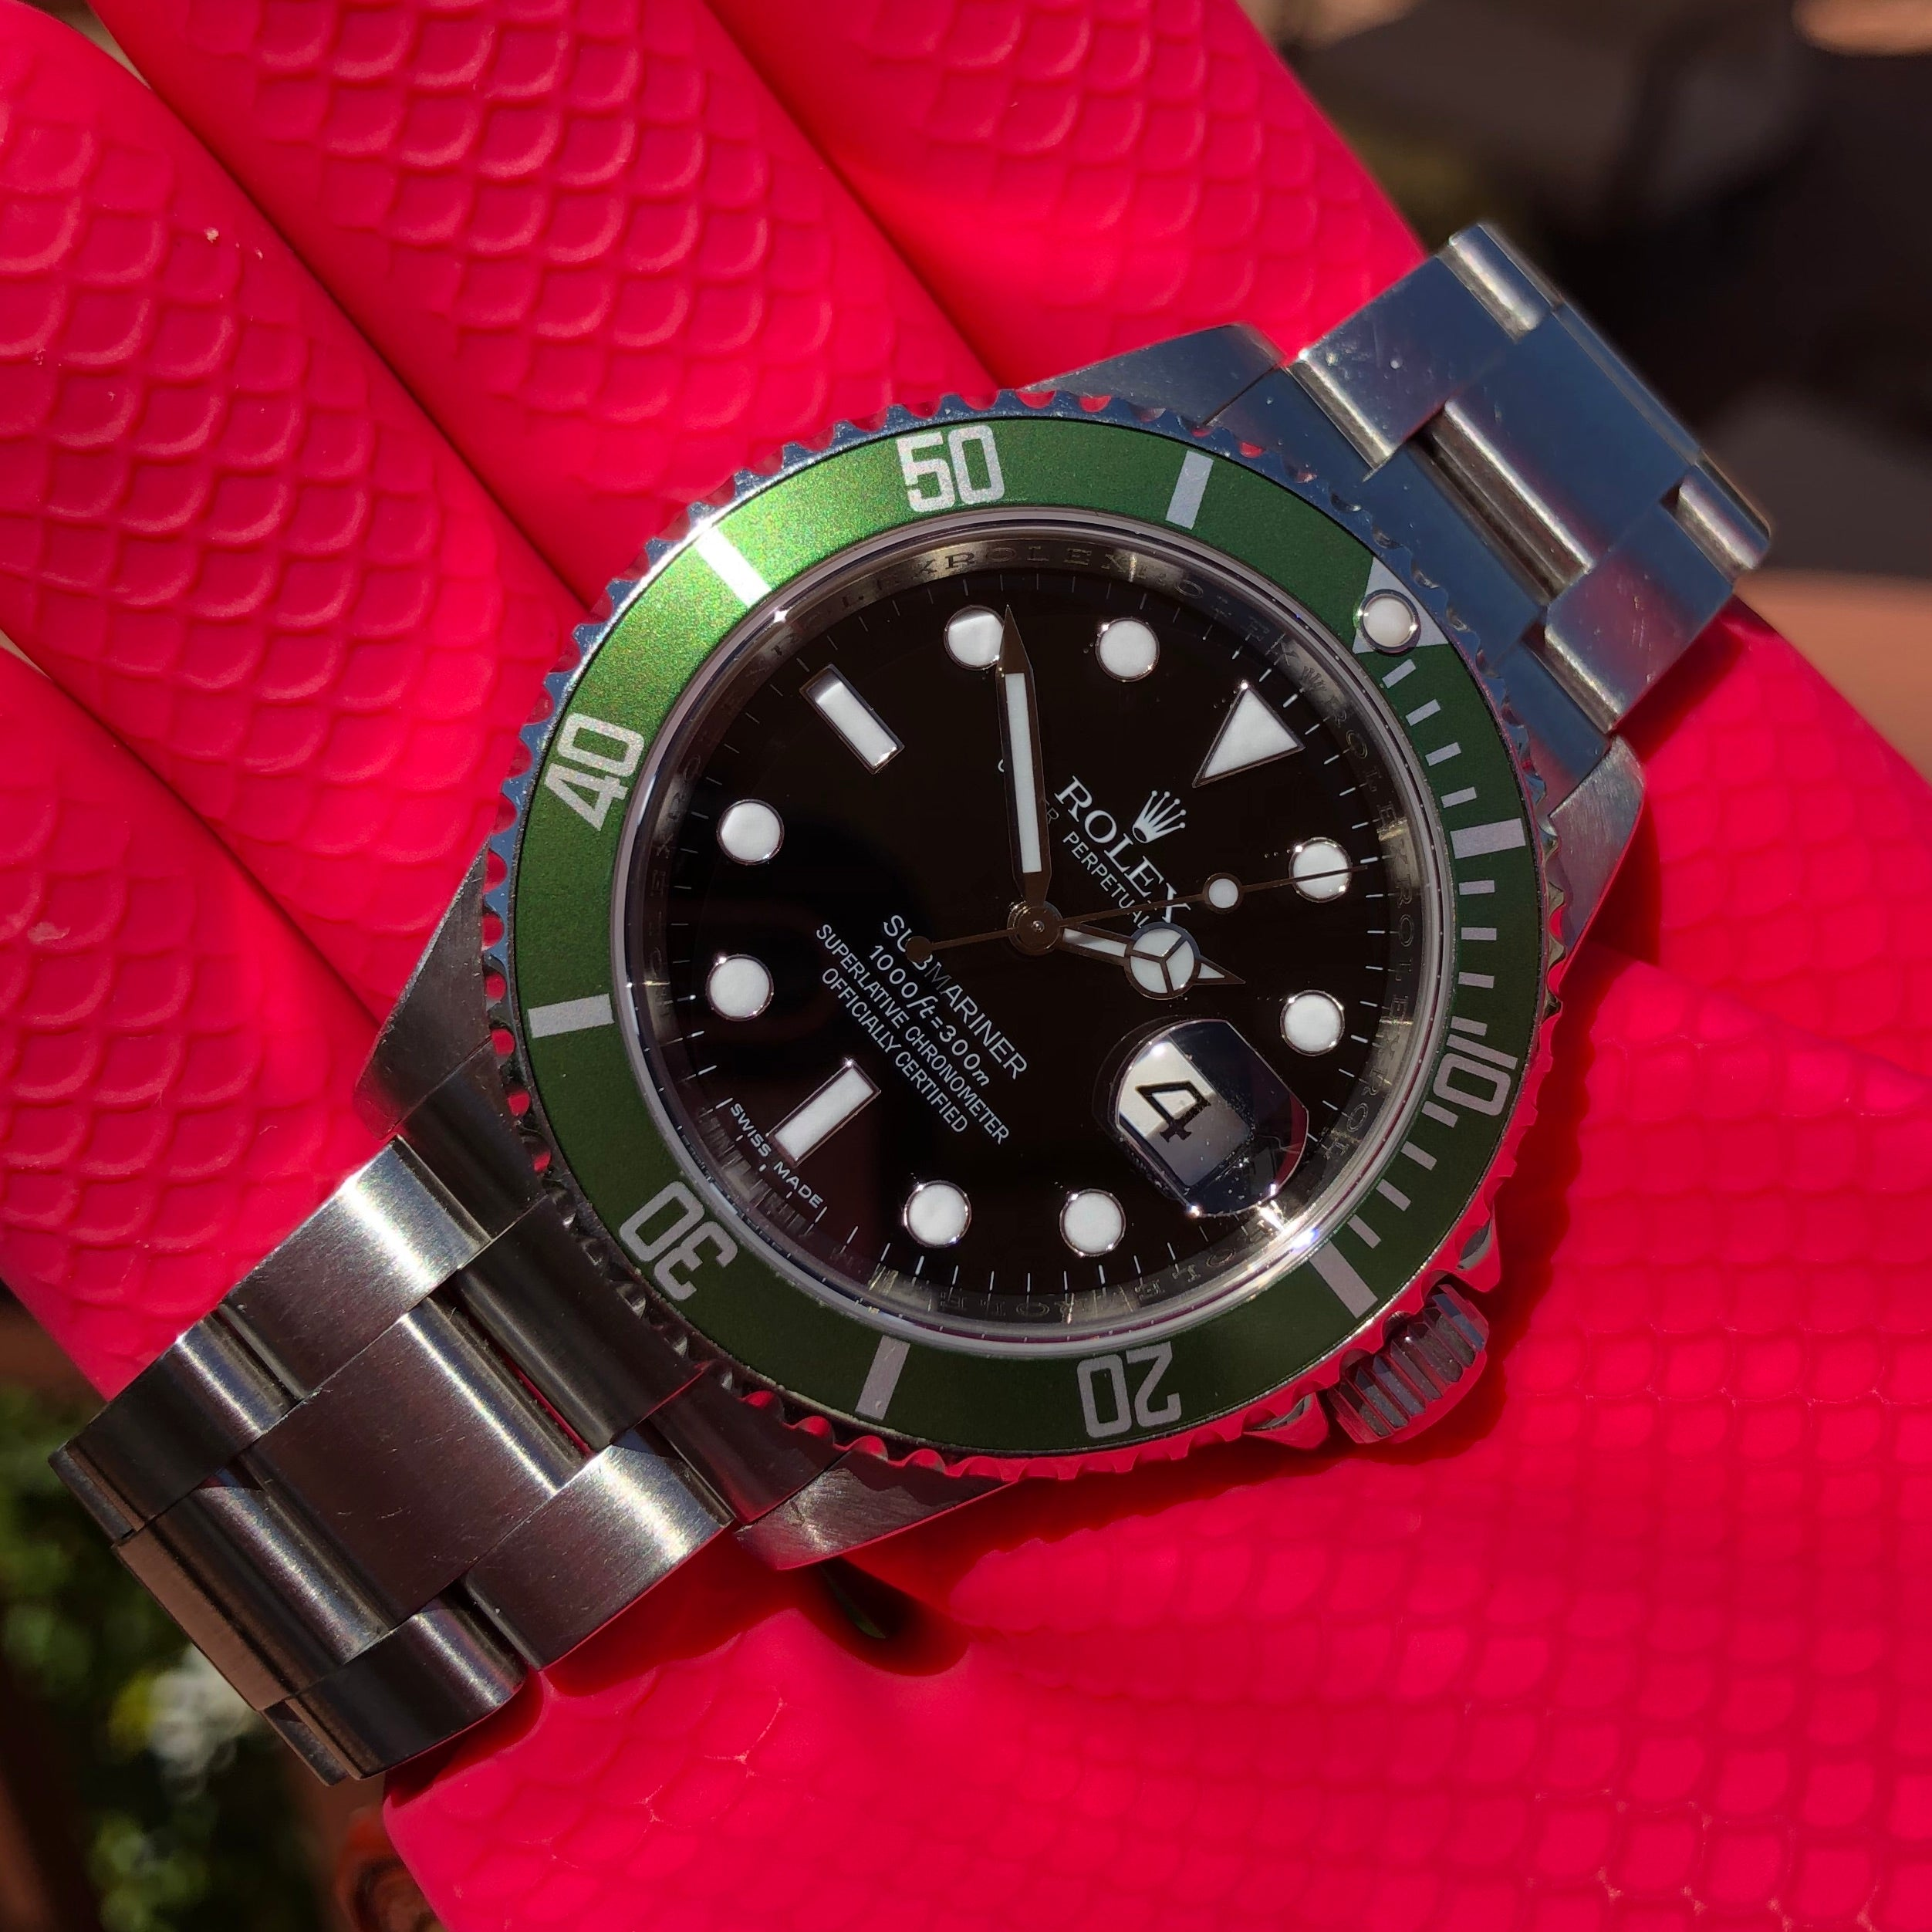 Rolex Submariner Date 16610LV 50th Anniversary Kermit Mk 8 Steel Full Set Box Papers Circa 2008 - Hashtag Watch Company